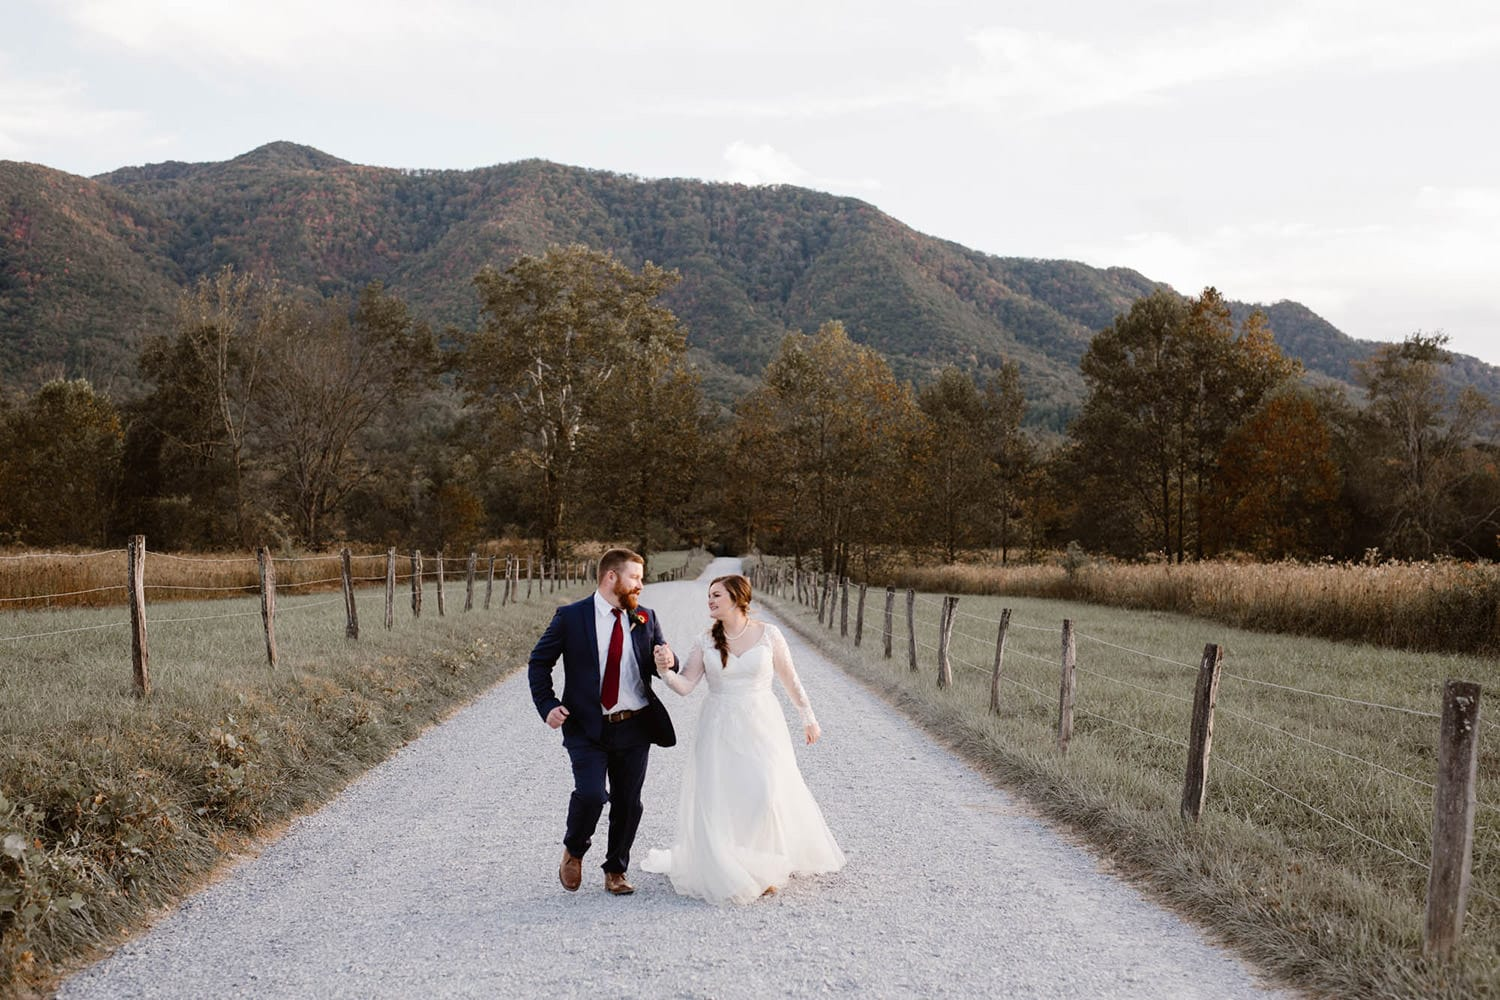 couple in a dirt road with the mountains behind them, happy because they decided on the best places to elope